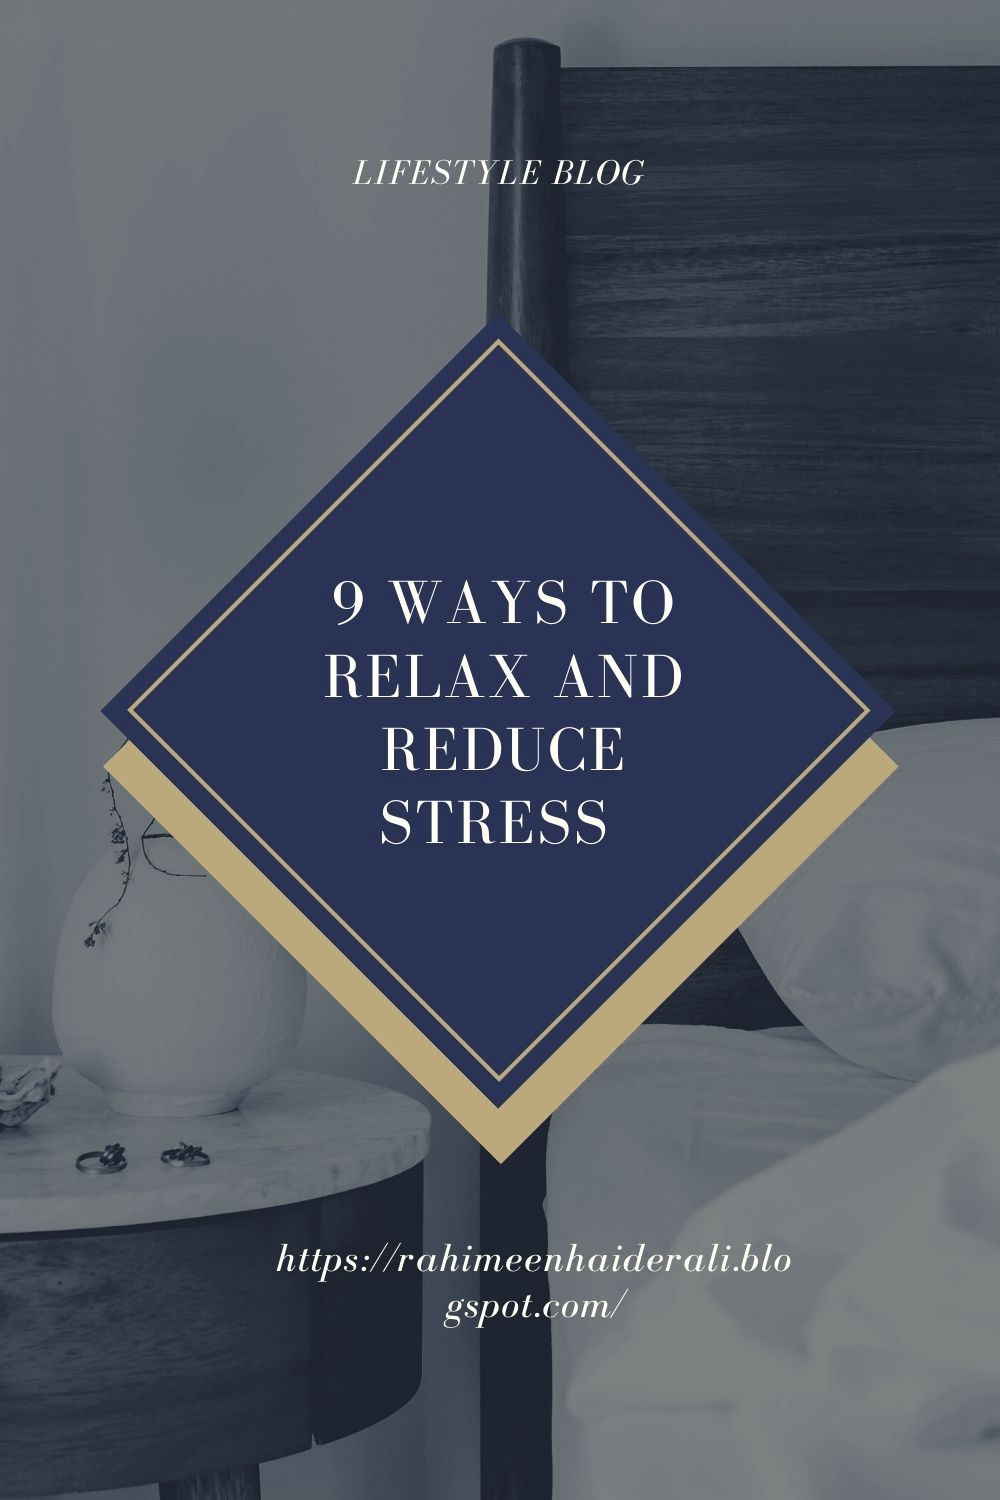 9 WAYS TO RELAX AND REDUCE STRESS